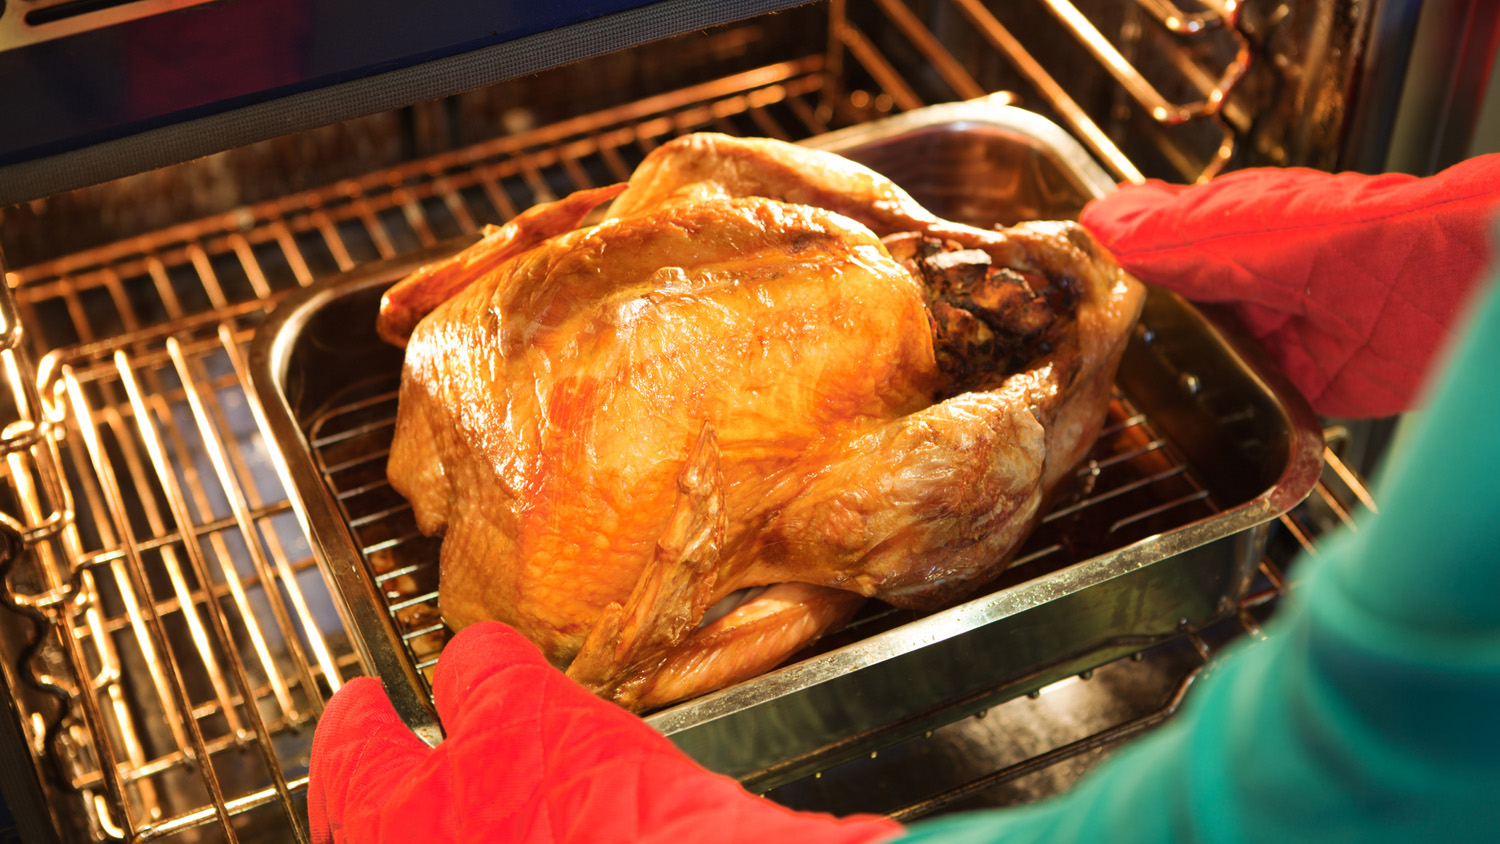 Unidentified person removing a pan of roasted turkey with stuffing fresh from the kitchen oven.